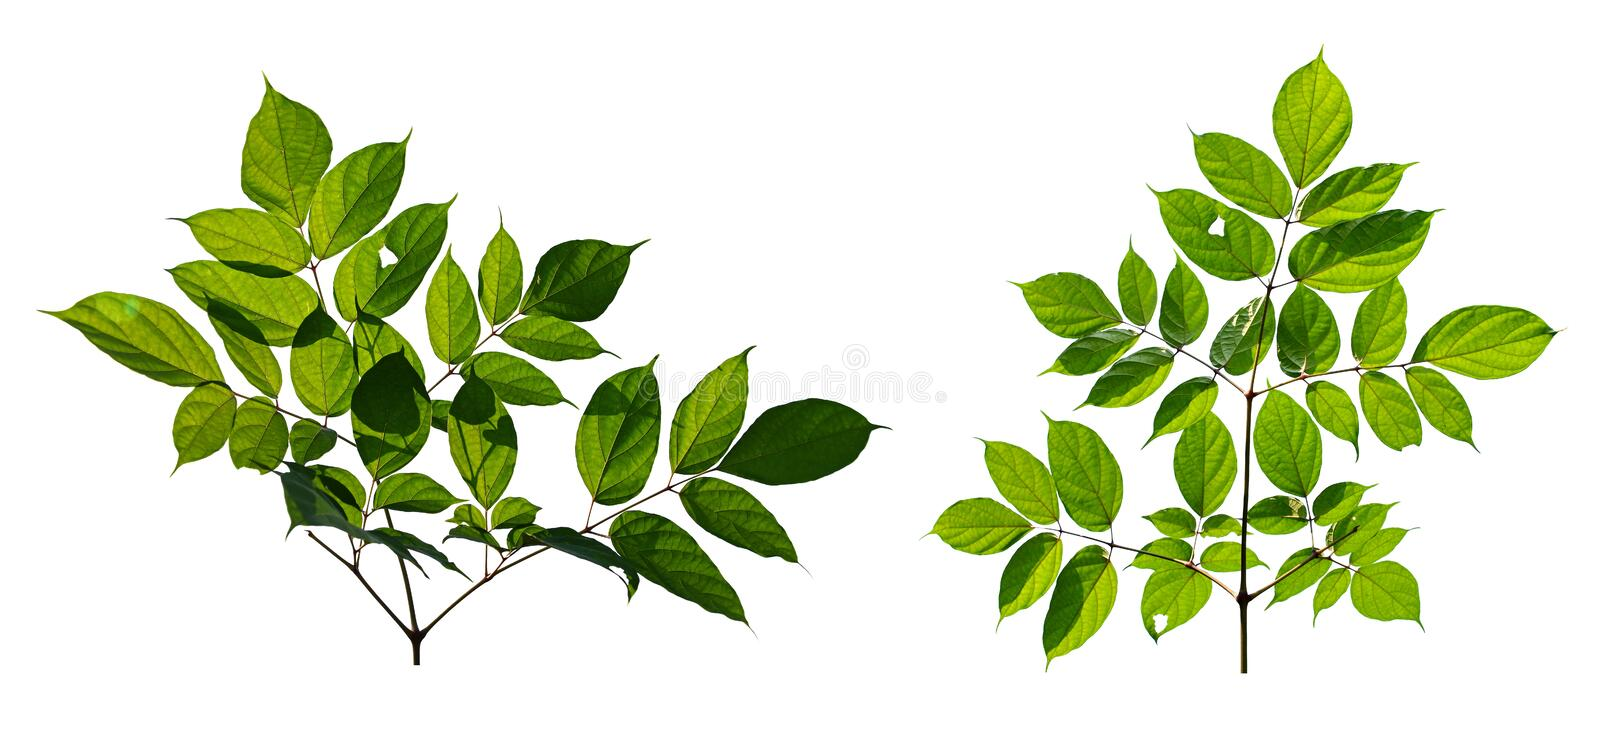 Green leaves isolated on white background. Clipping path include in this image.  royalty free stock photo